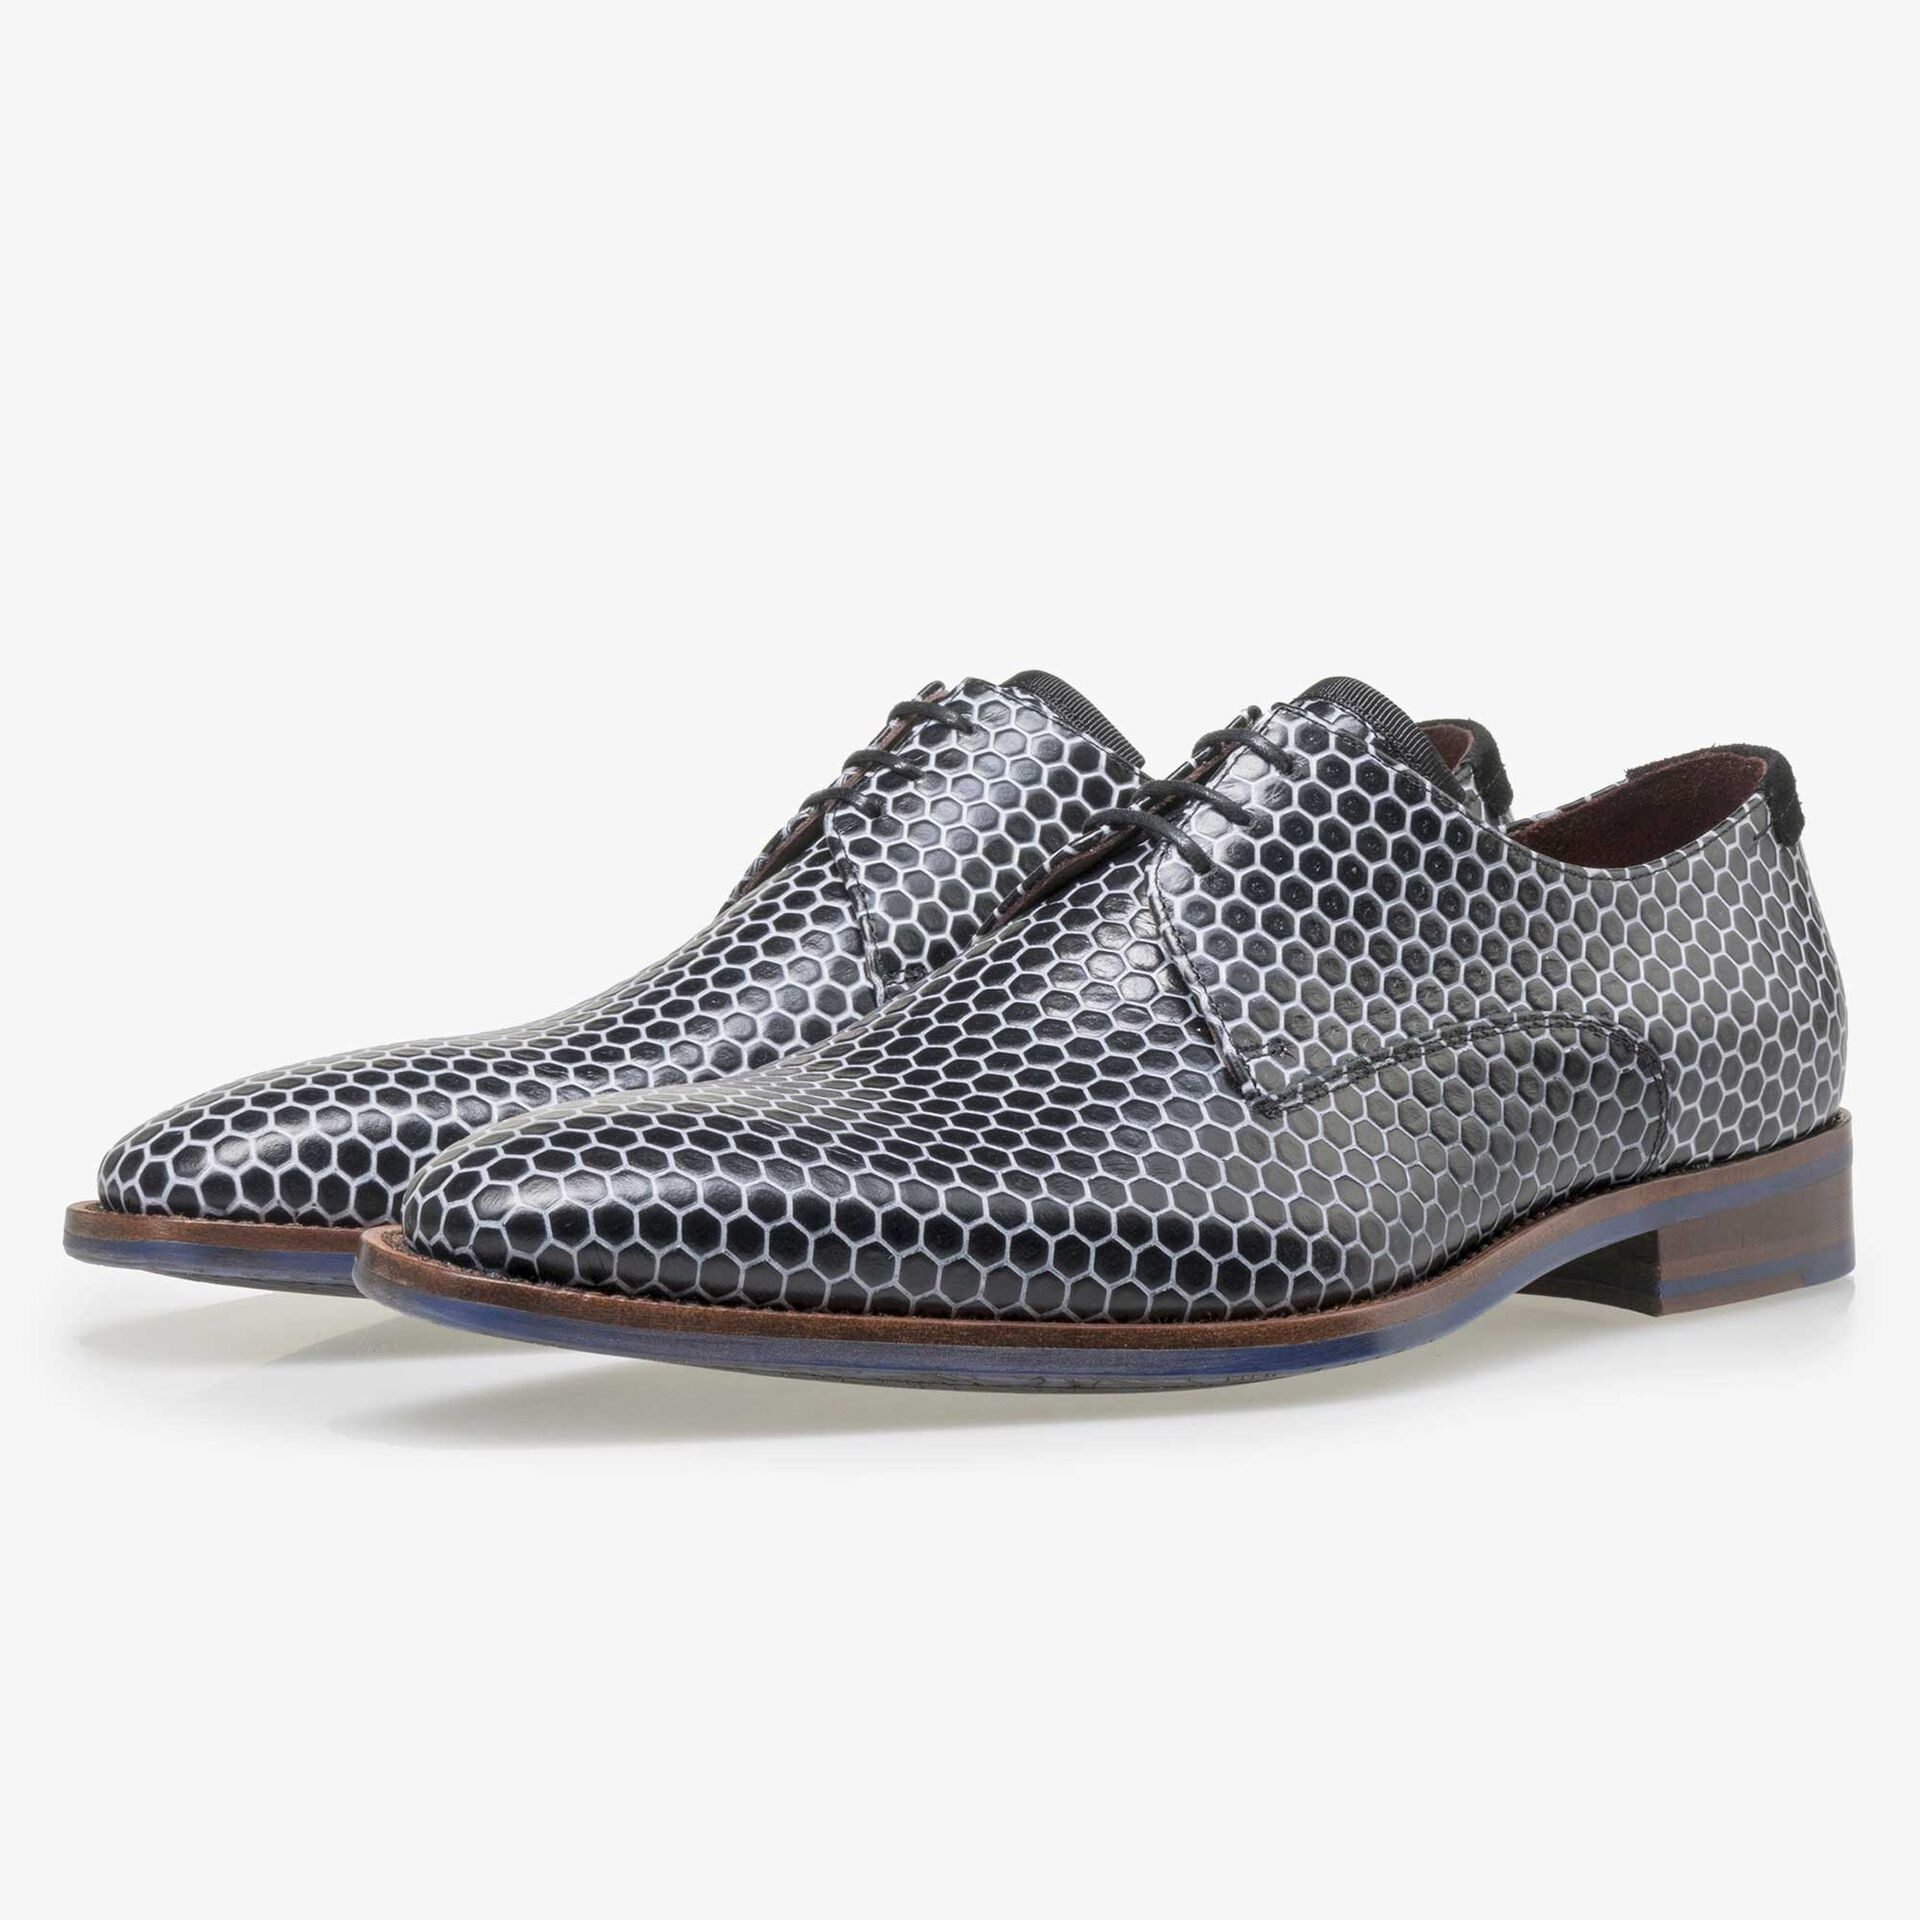 Floris van Bommel black calf's leather lace shoe finished with white hexagon print